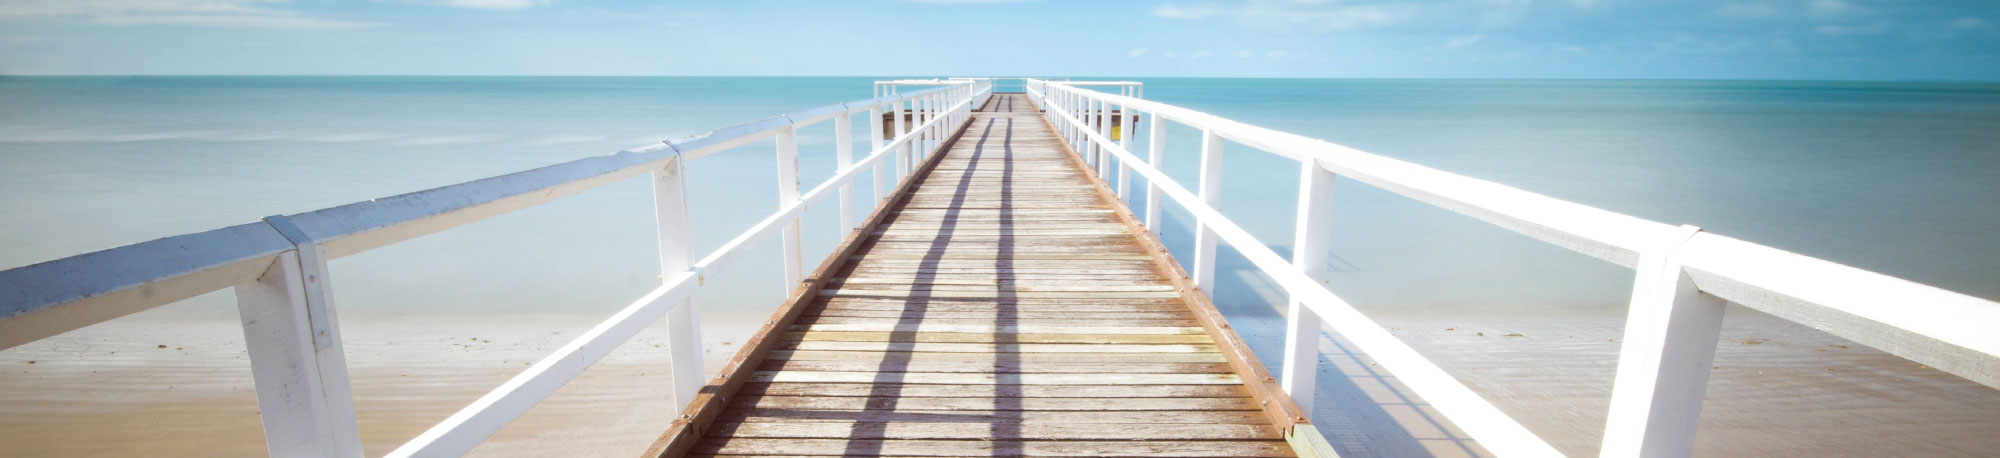 Banner image of a walkway at a beach